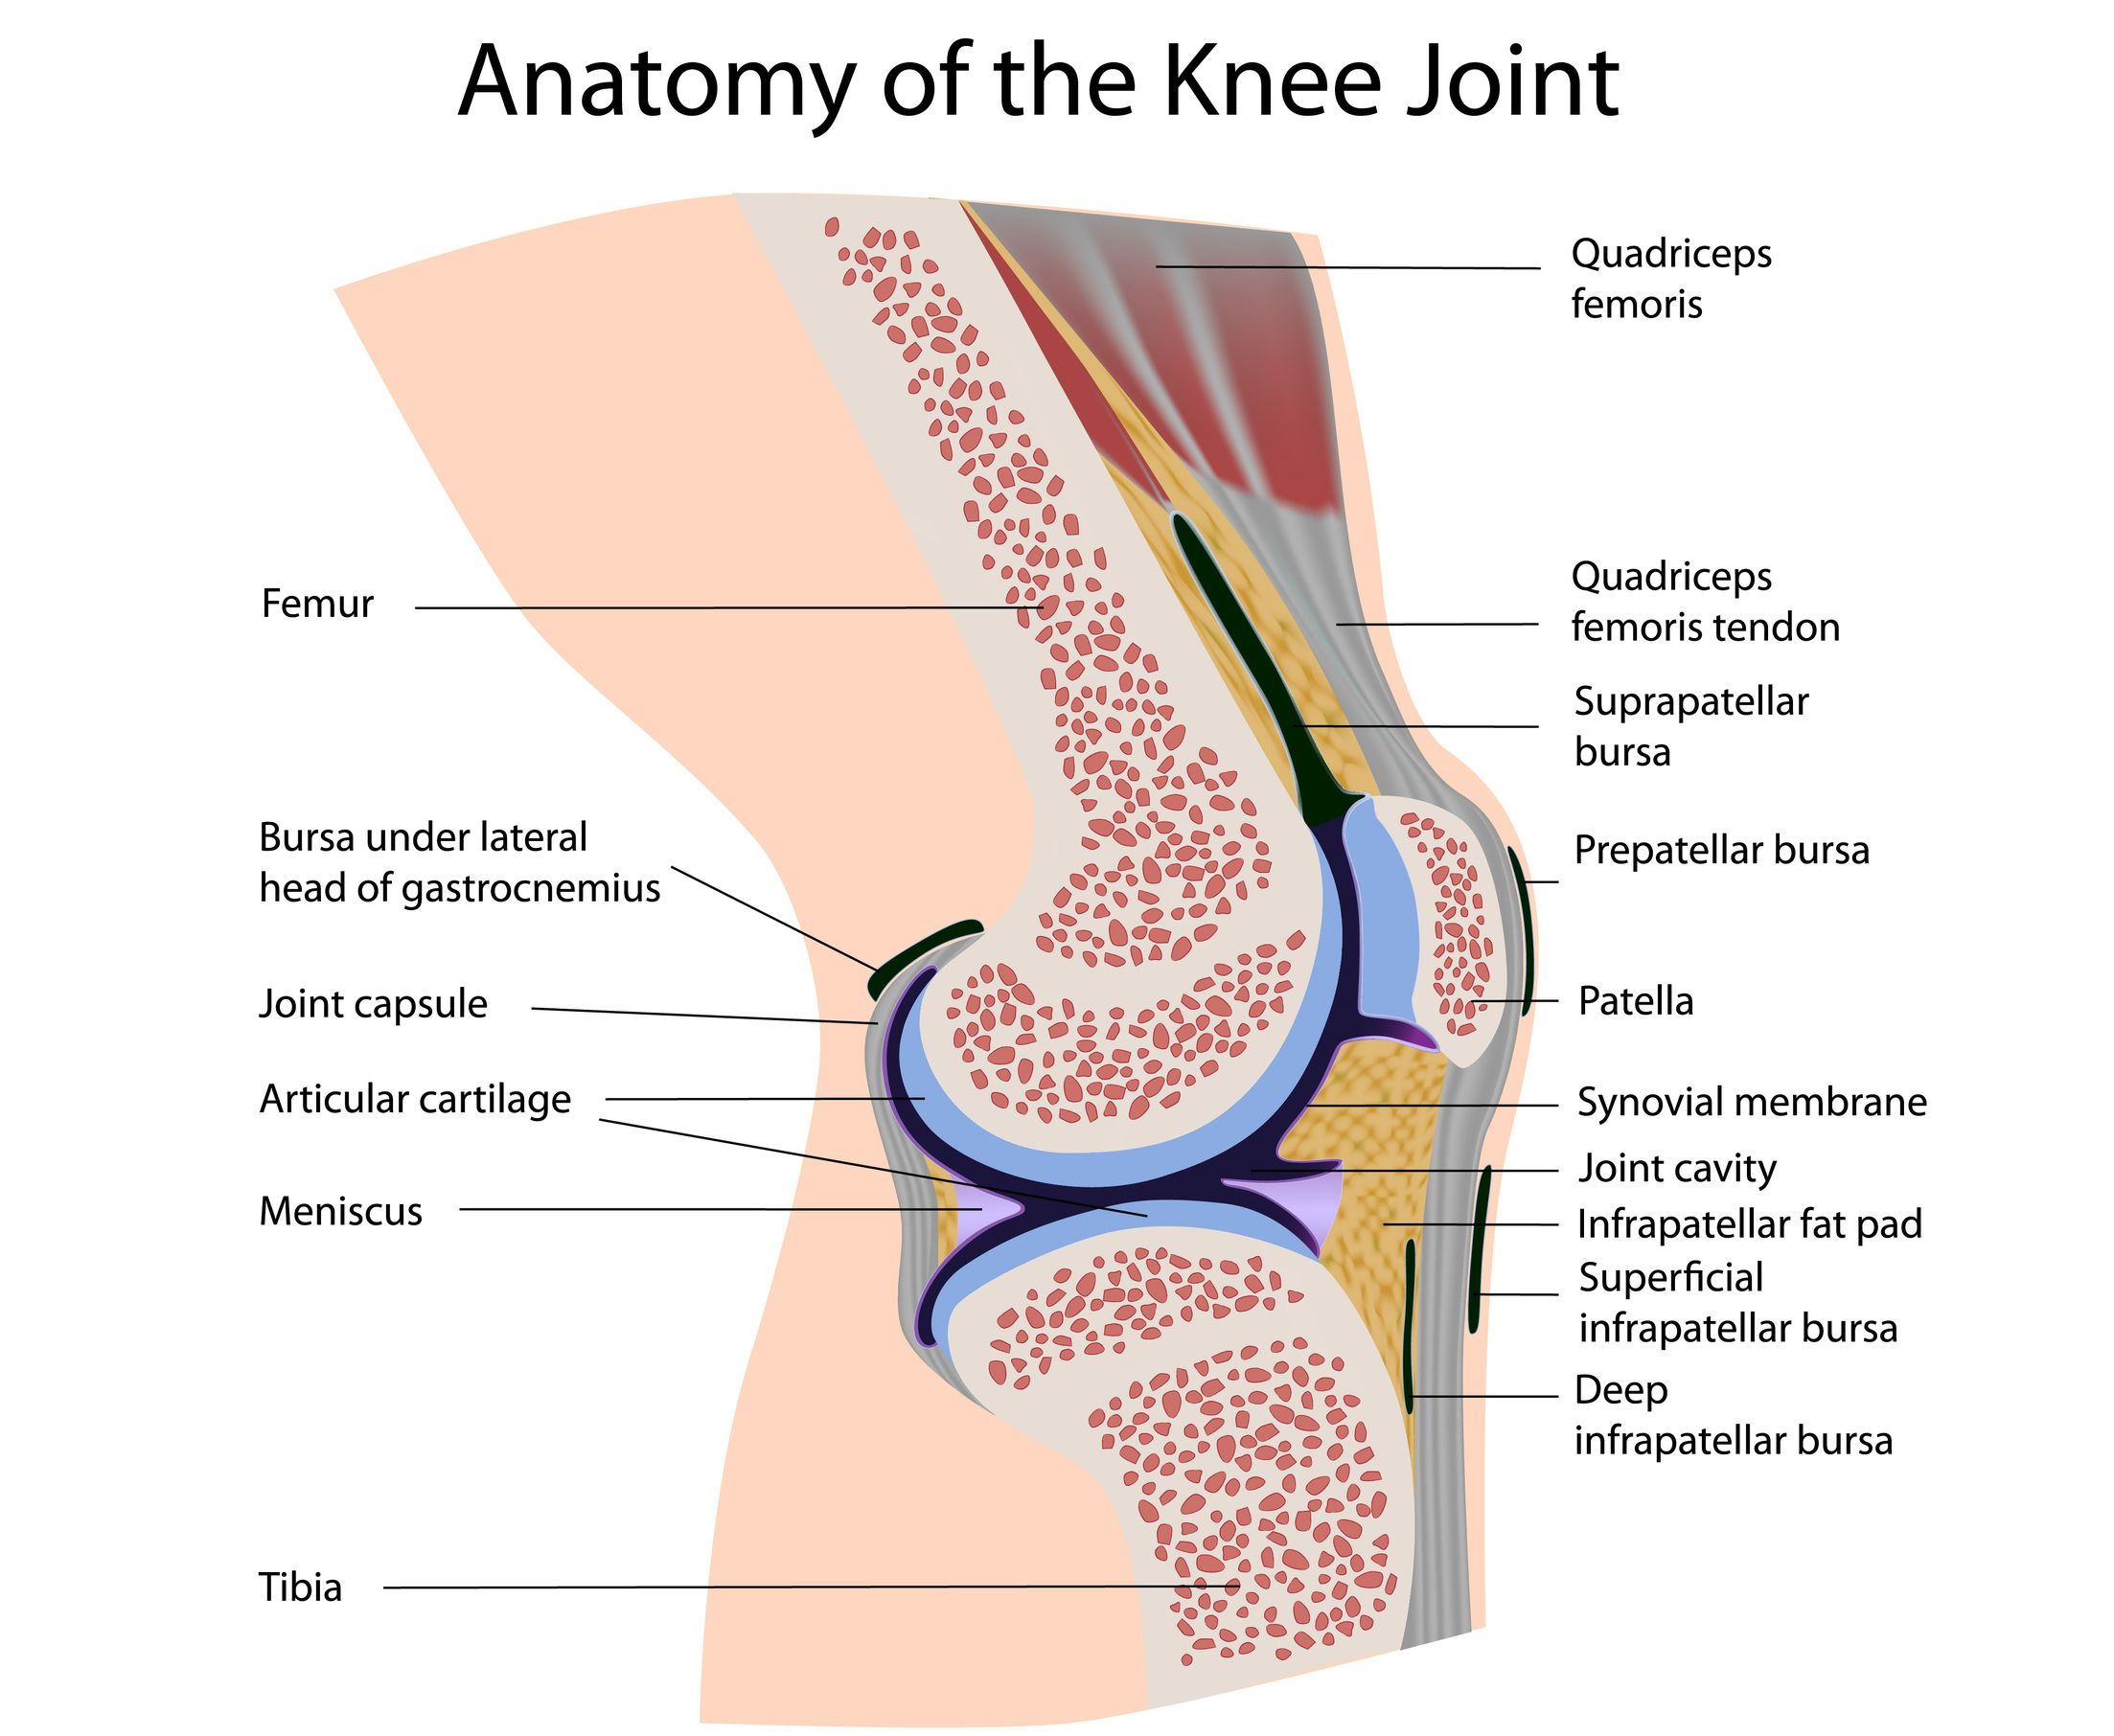 medium resolution of another important part of the knee anatomy is the muscles there are many muscles surrounding the knee joint but the biggest are the thigh muscles or the